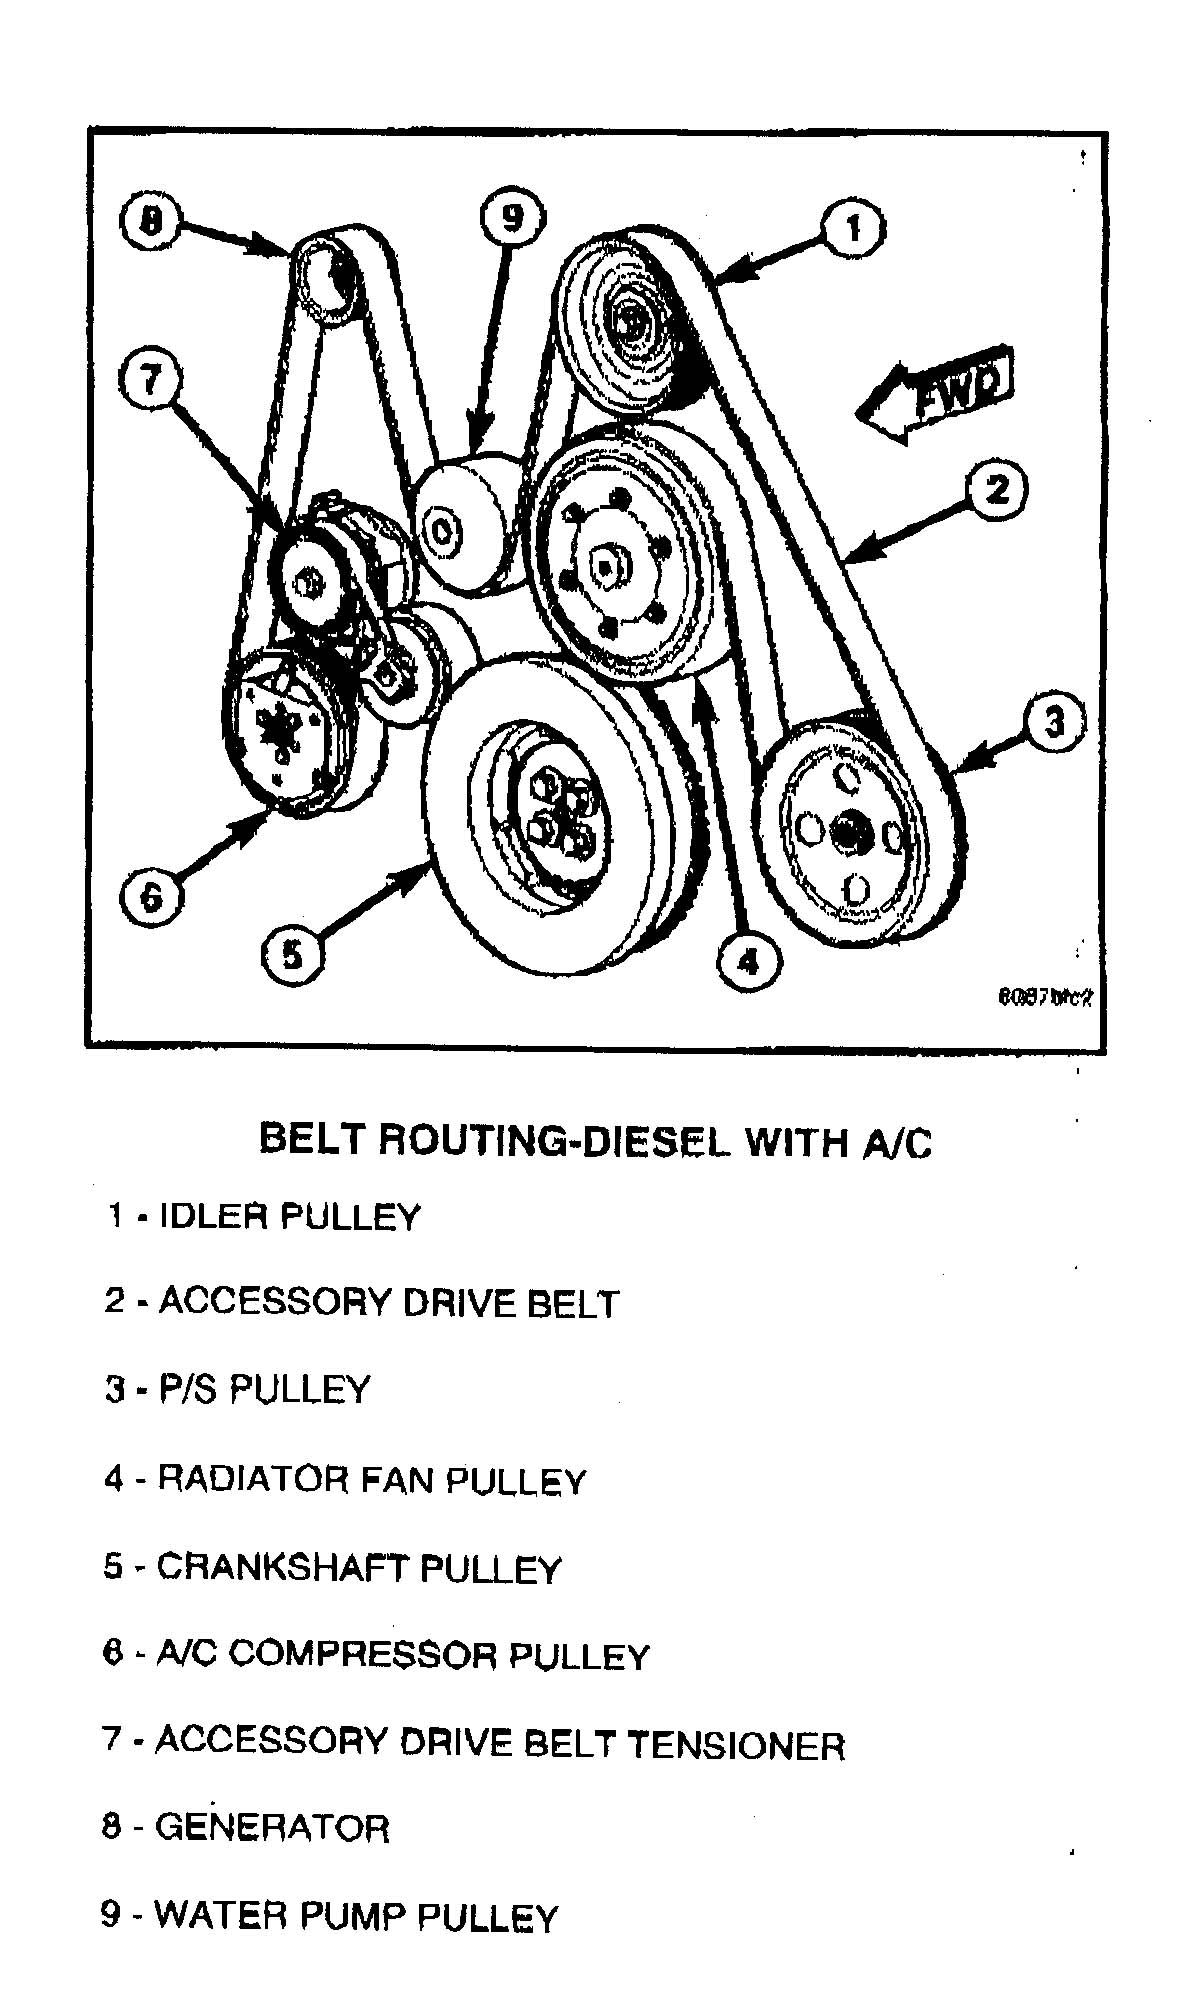 medium resolution of 6 7 belt routing diagram dodge diesel diesel truck resource 2010 dodge journey belt routing diagram